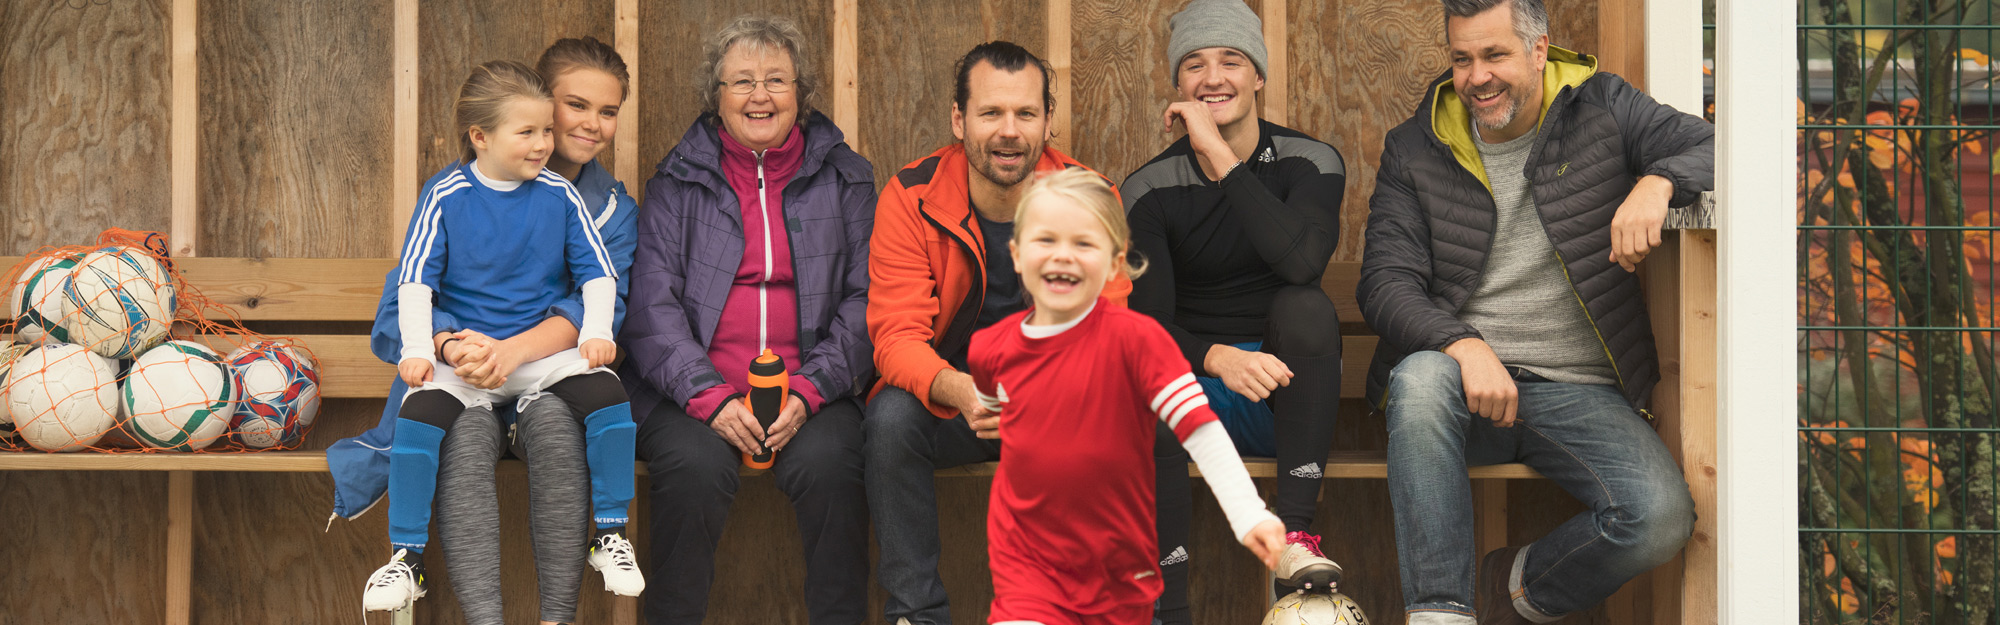 A group of people watching a kids soccer game.